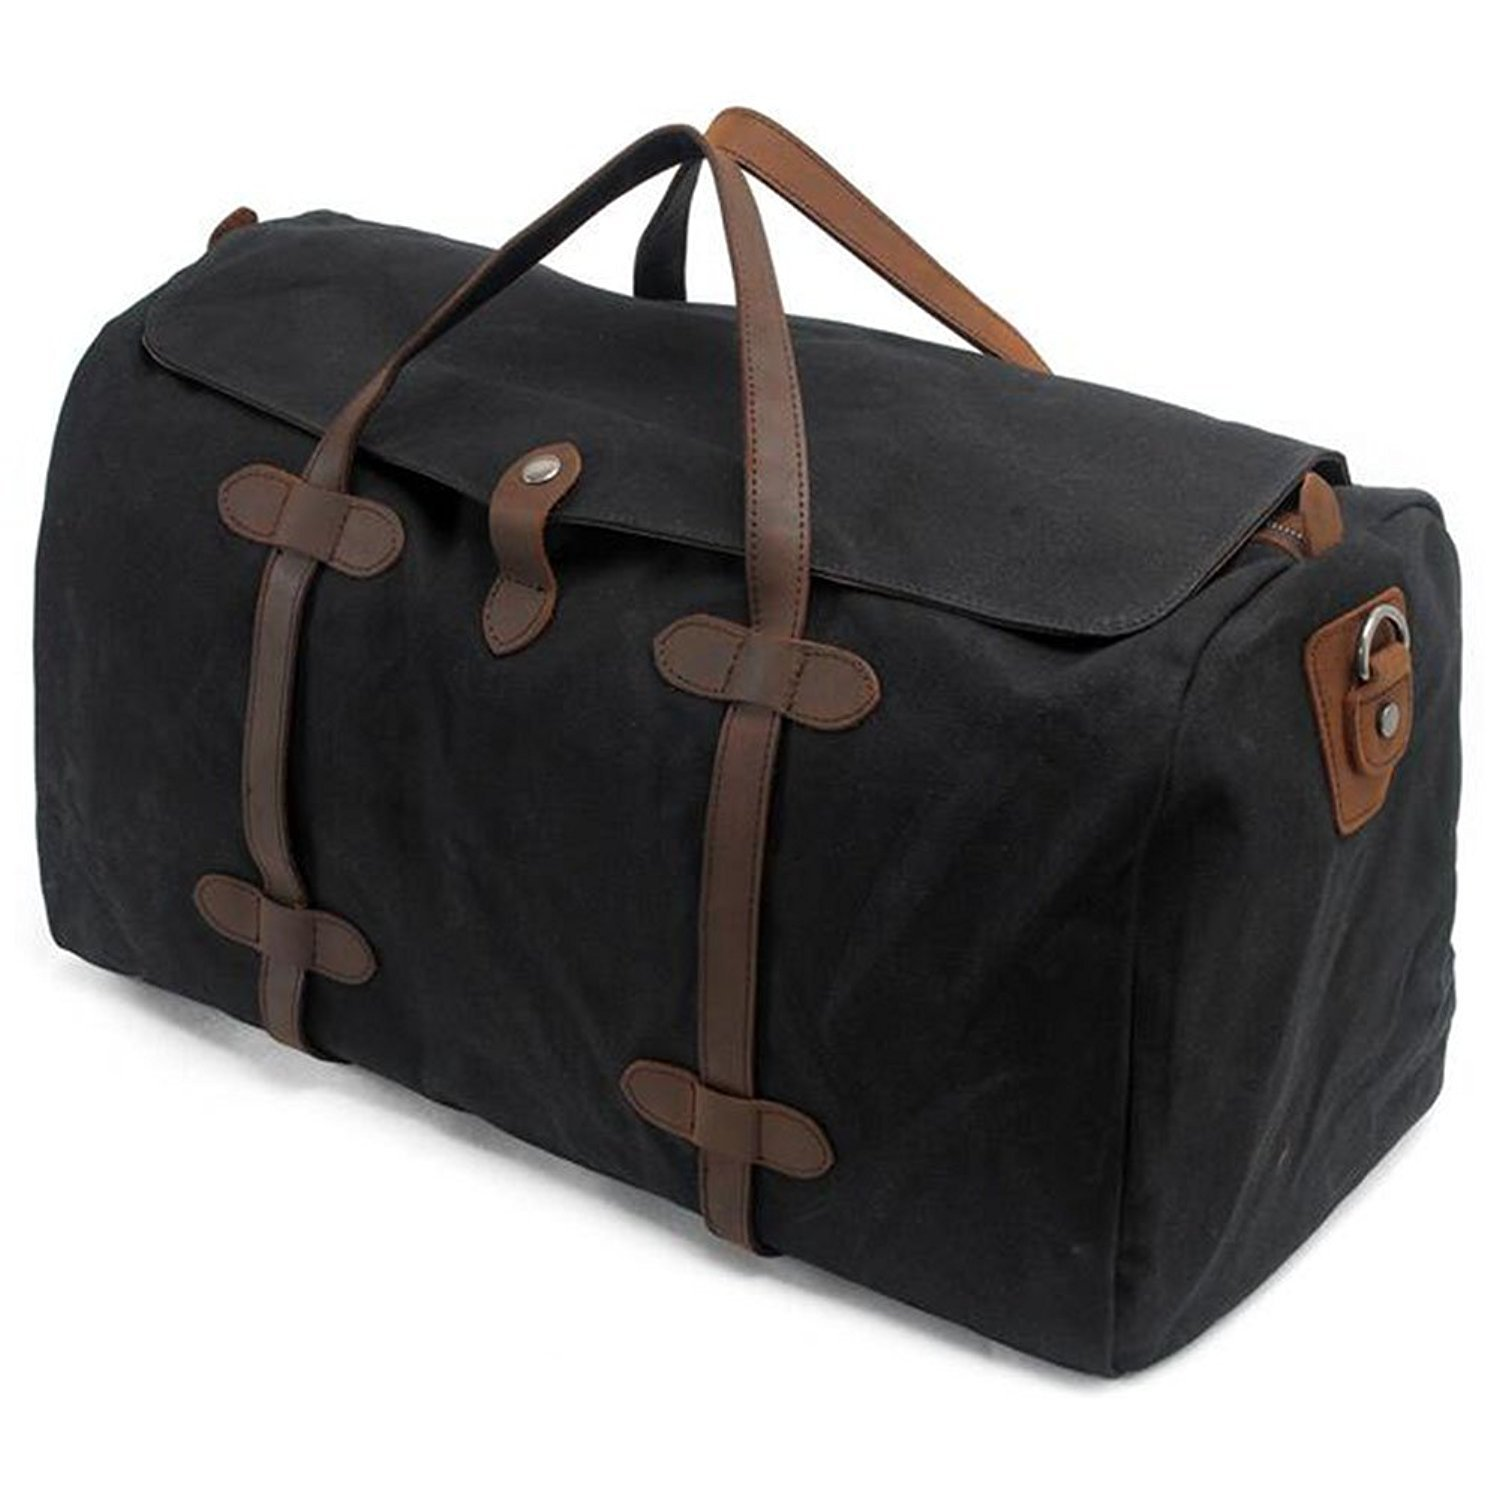 218424fd02366a S-ZONE Vintage Waxed Leather Canvas Travel Bag Extra Large Capacity Holdall  Travel Duffle Carry-on Baggage Gym Bag with Adjustable and Detachable  Shoulder ...